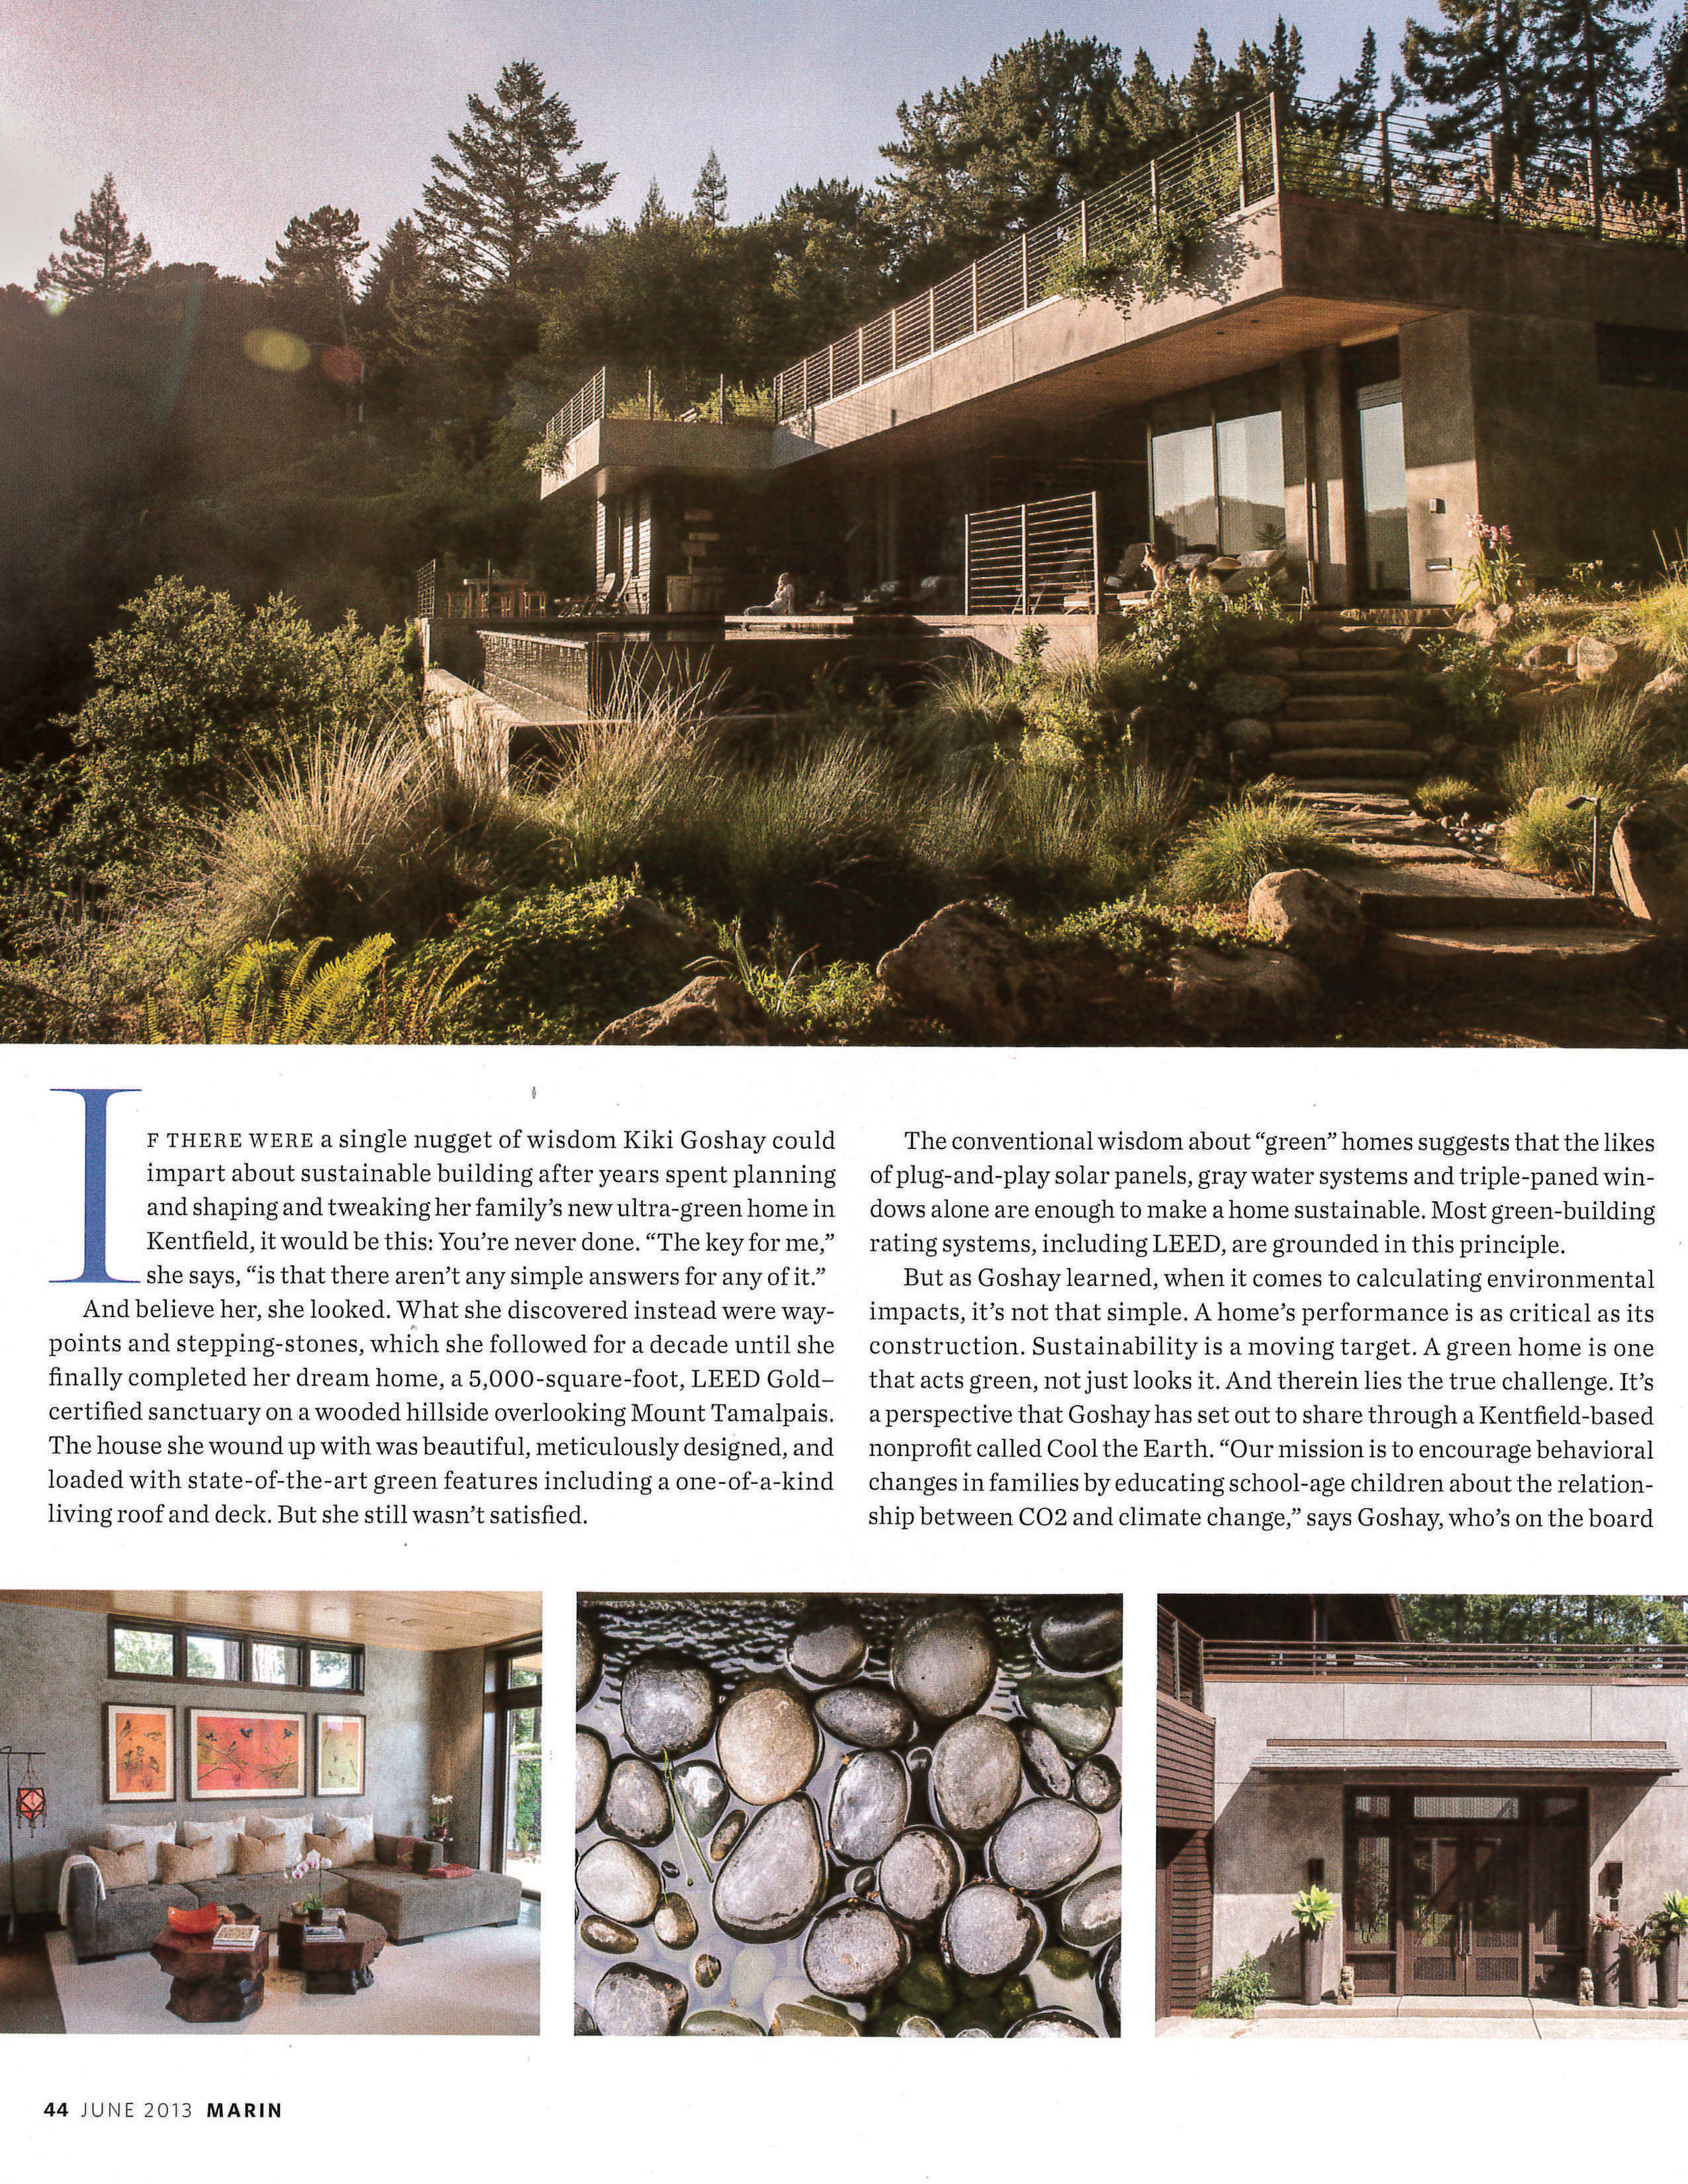 The pool, home and 2000 square foot living roof are show with text from the article.